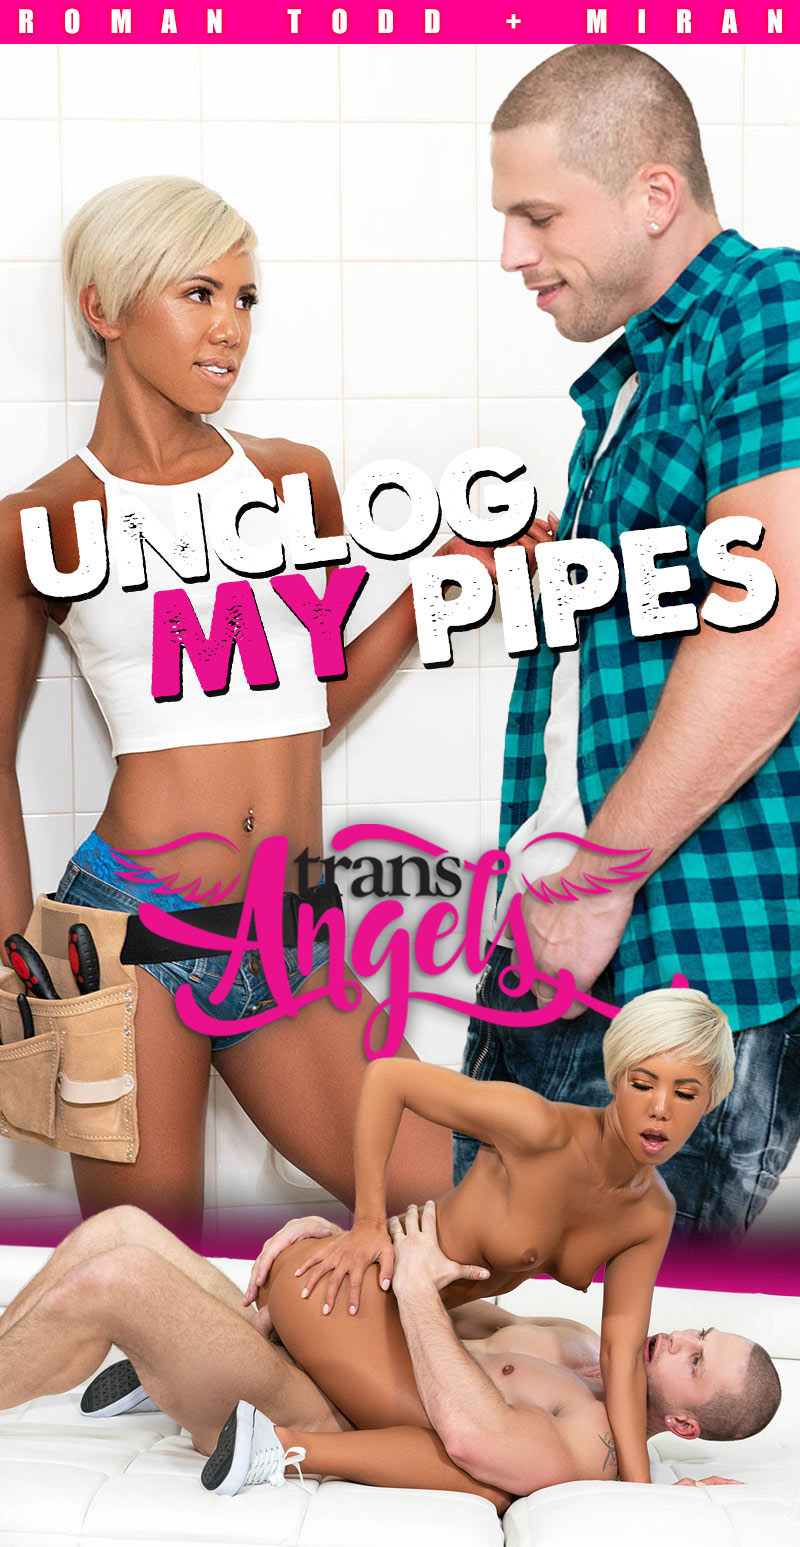 Unclog My Pipes (Roman Todd Fucks Miran) (Bareback) at Trans Angels